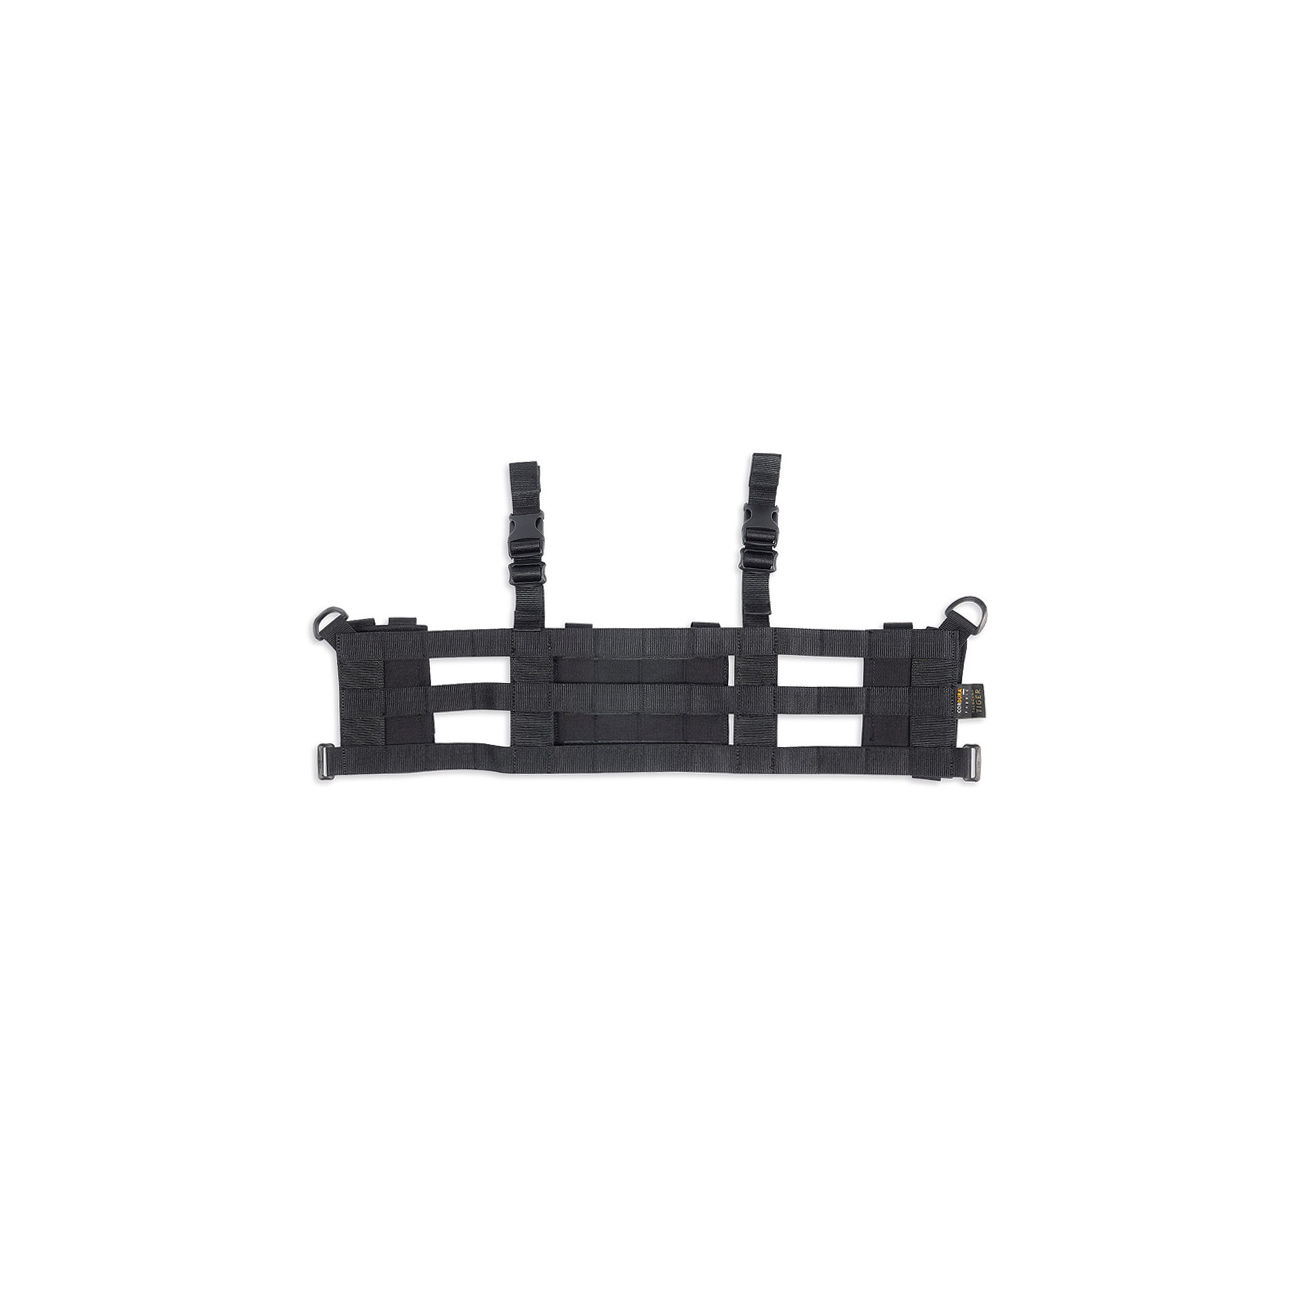 TT FL Chest Rig schwarz 0